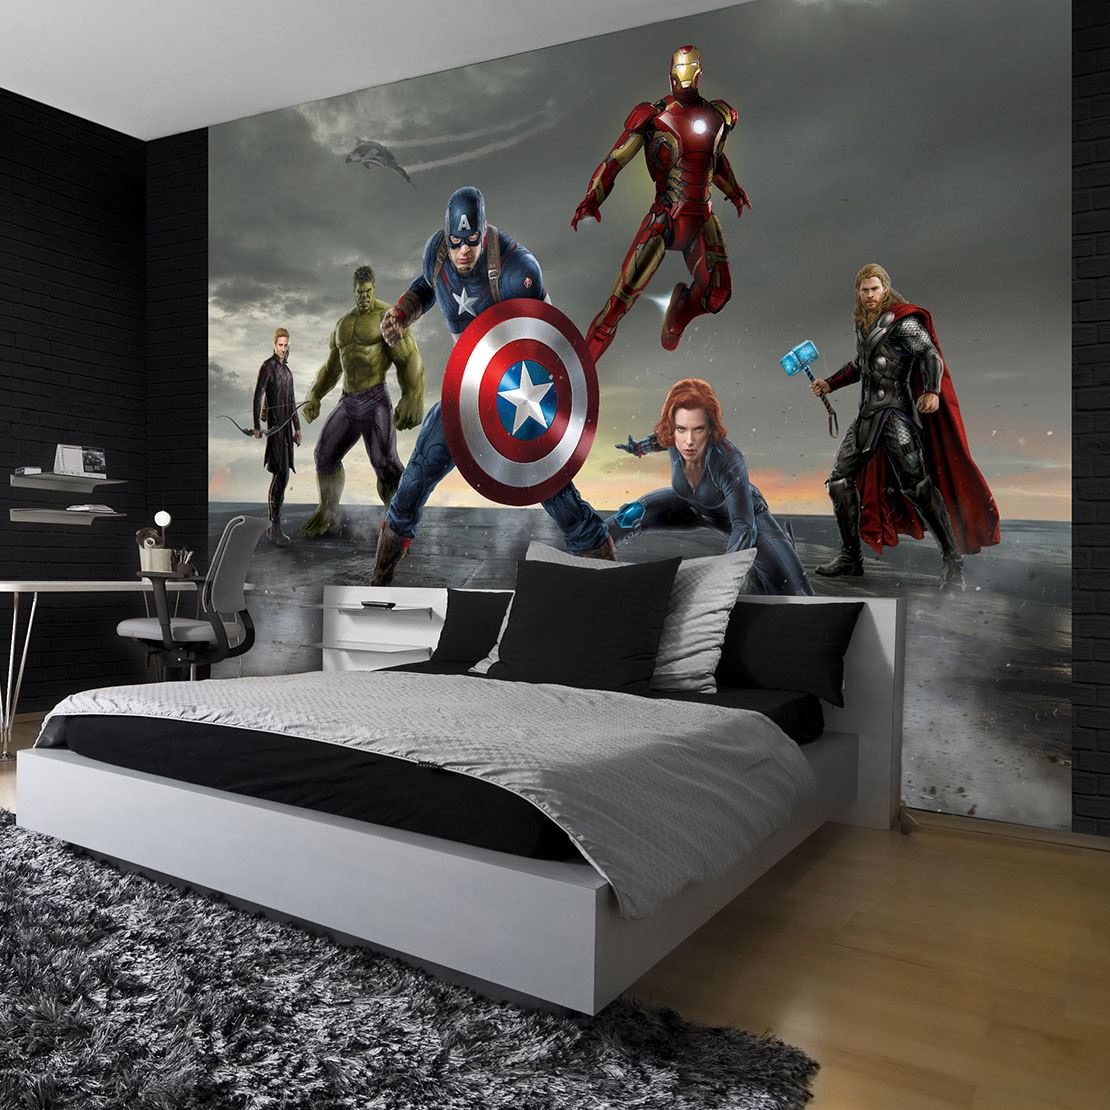 papier peint disney avengers pour chambre d 39 enfant ou ado lesaccessoires. Black Bedroom Furniture Sets. Home Design Ideas